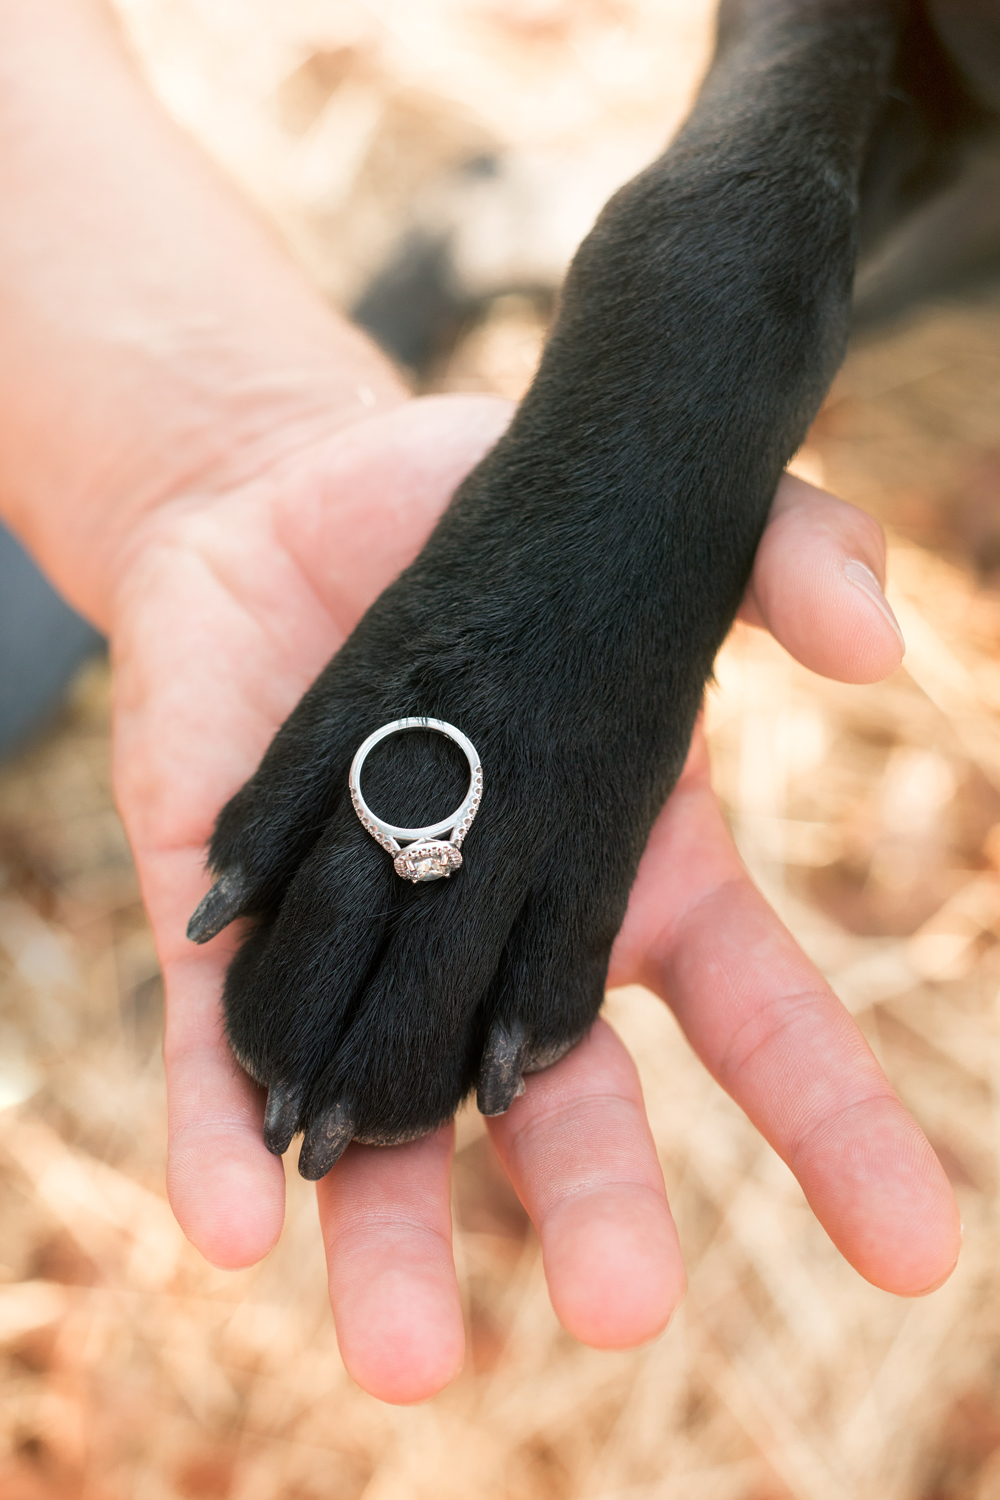 Engagement-with-Dog-photography-Upper-Bidwel-Park-Chico-1.jpg